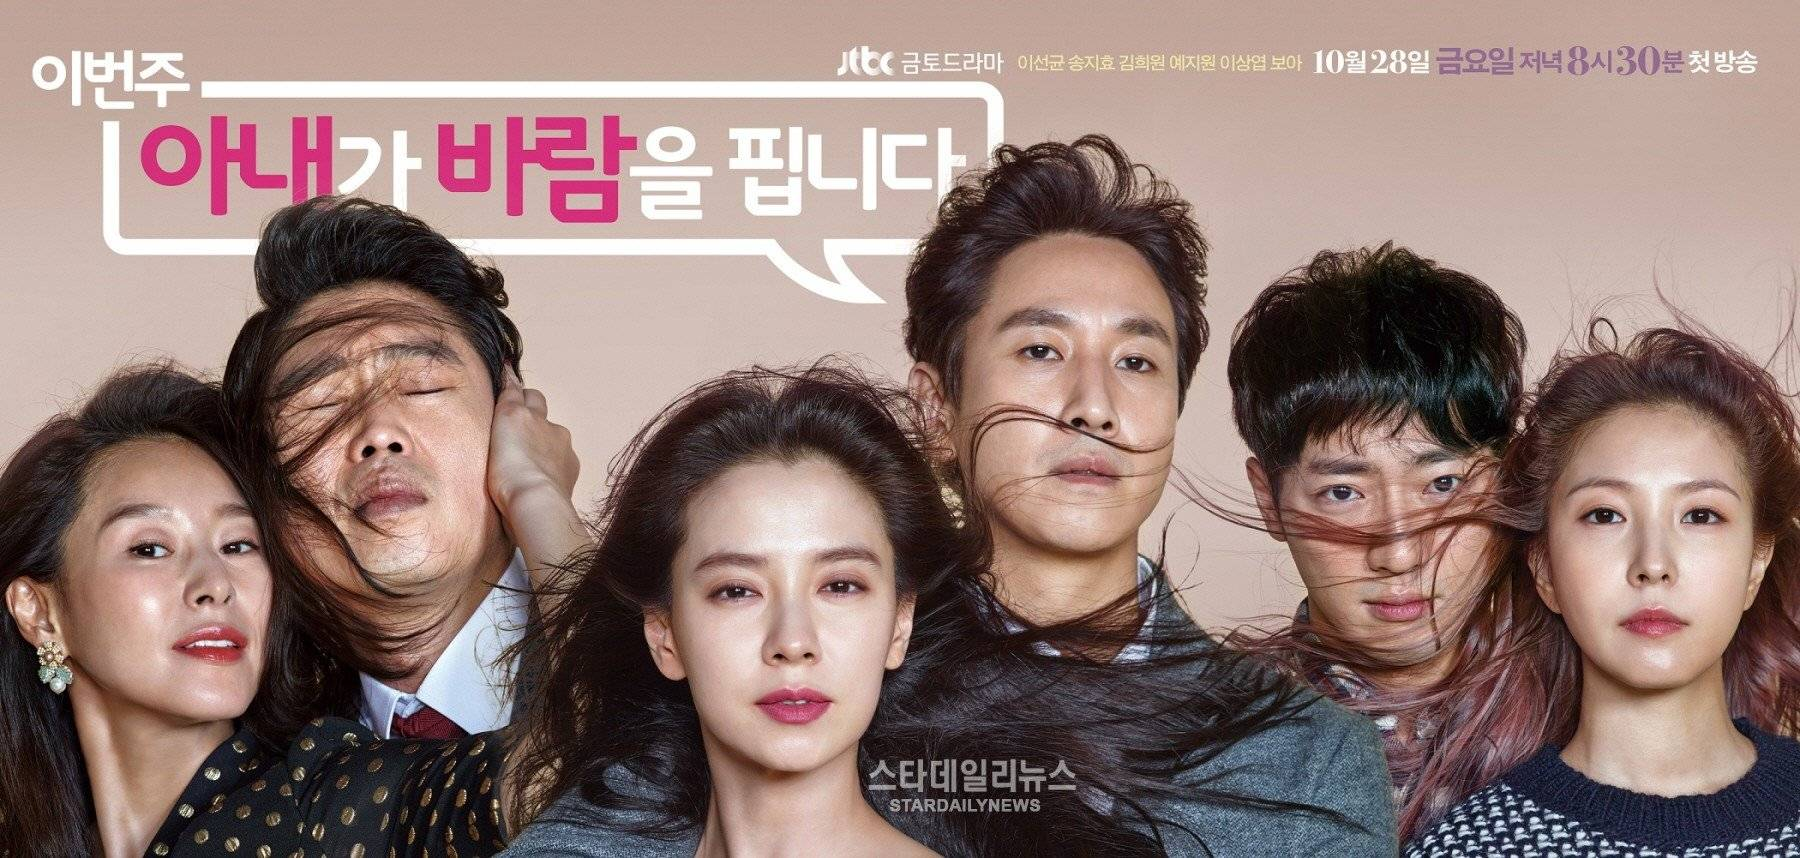 Video + Photos] Added new teasers, posters and updated cast